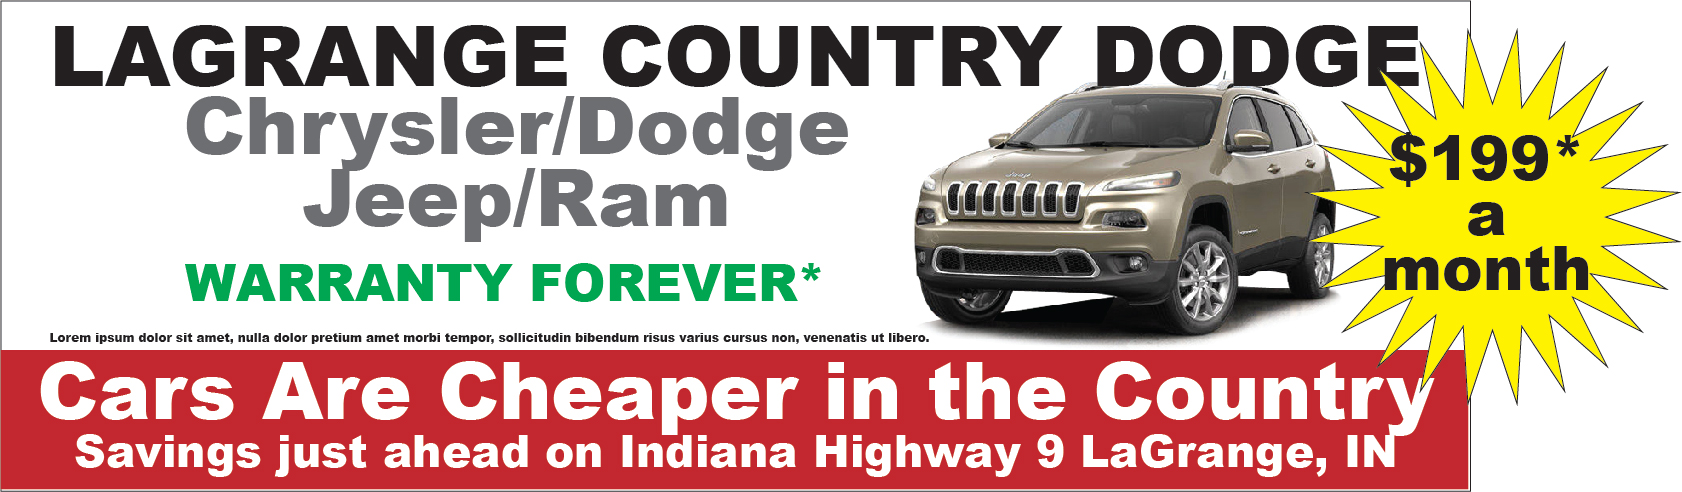 LaGrange Auto Dealer Outdoor Billboard